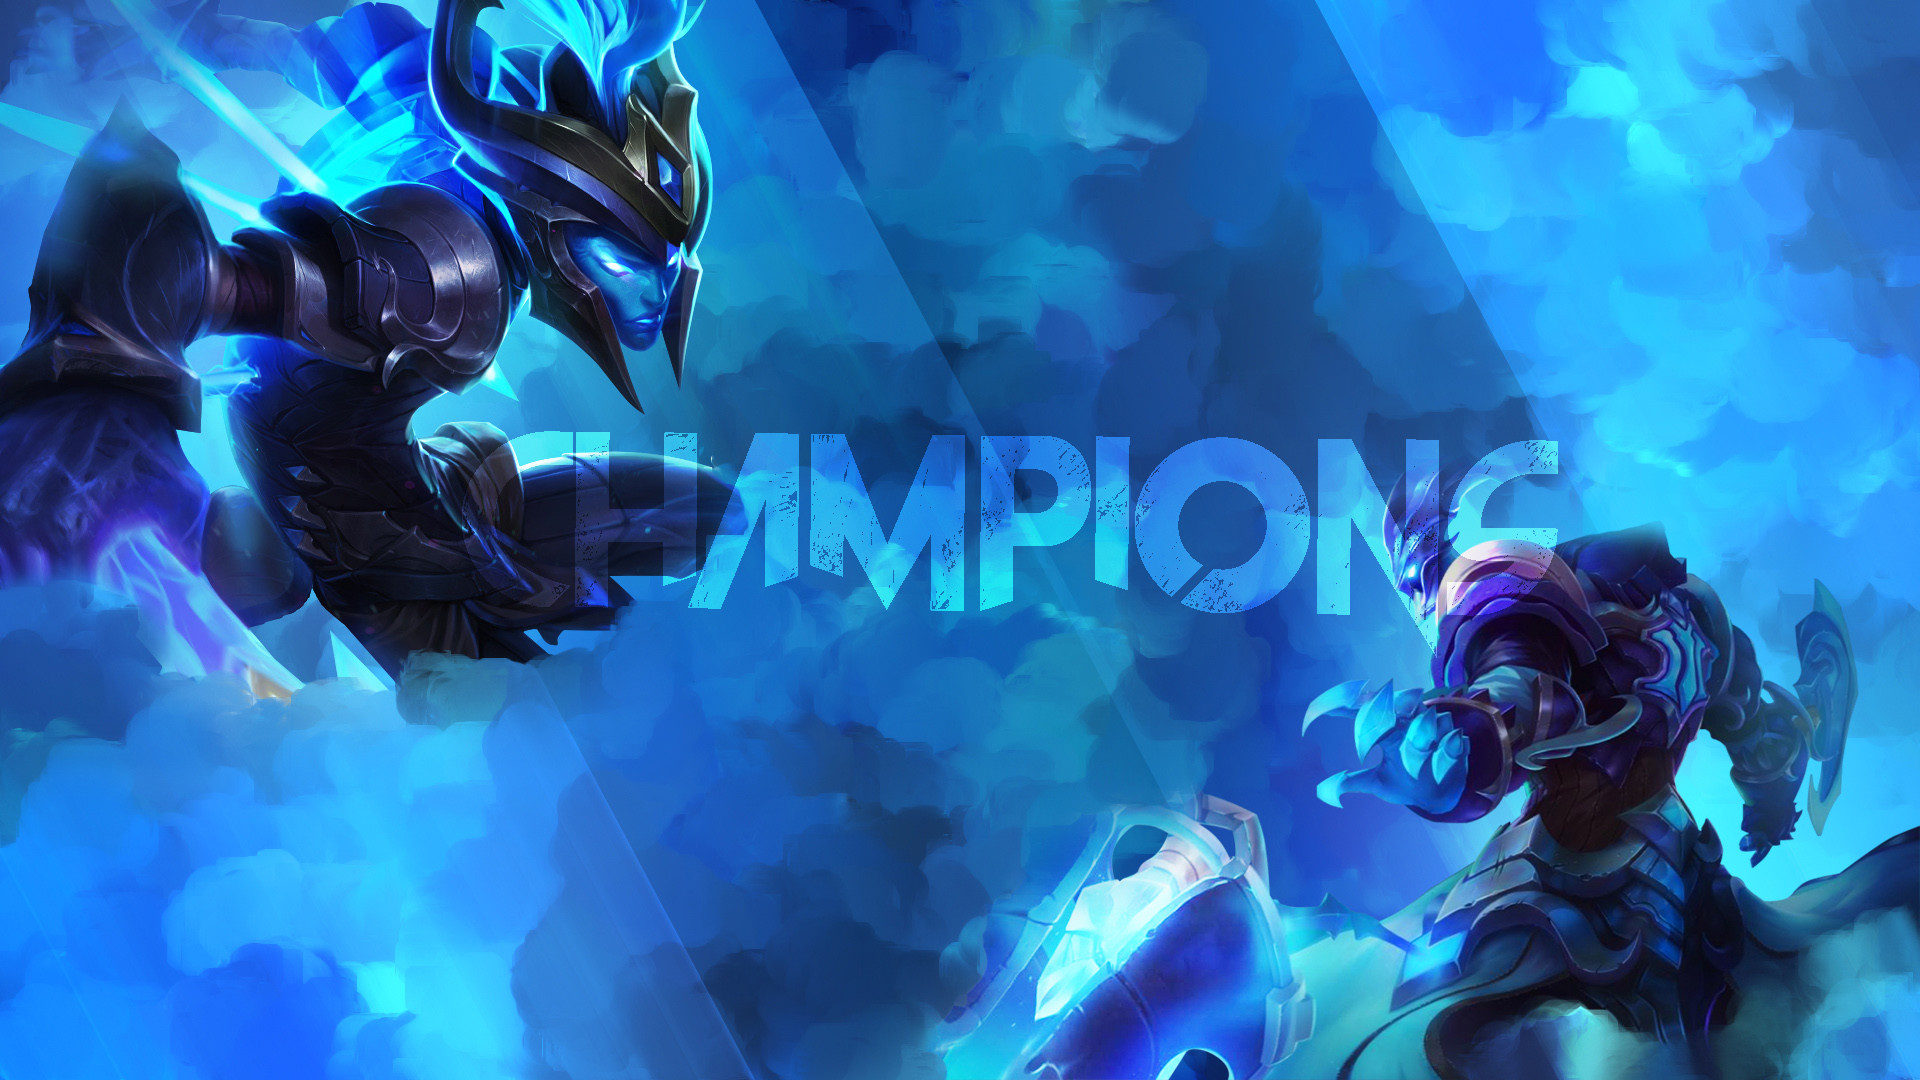 1920x1080 Championship Thresh & Kalista by Platna (2) HD Wallpaper Fan Art Artwork  League of